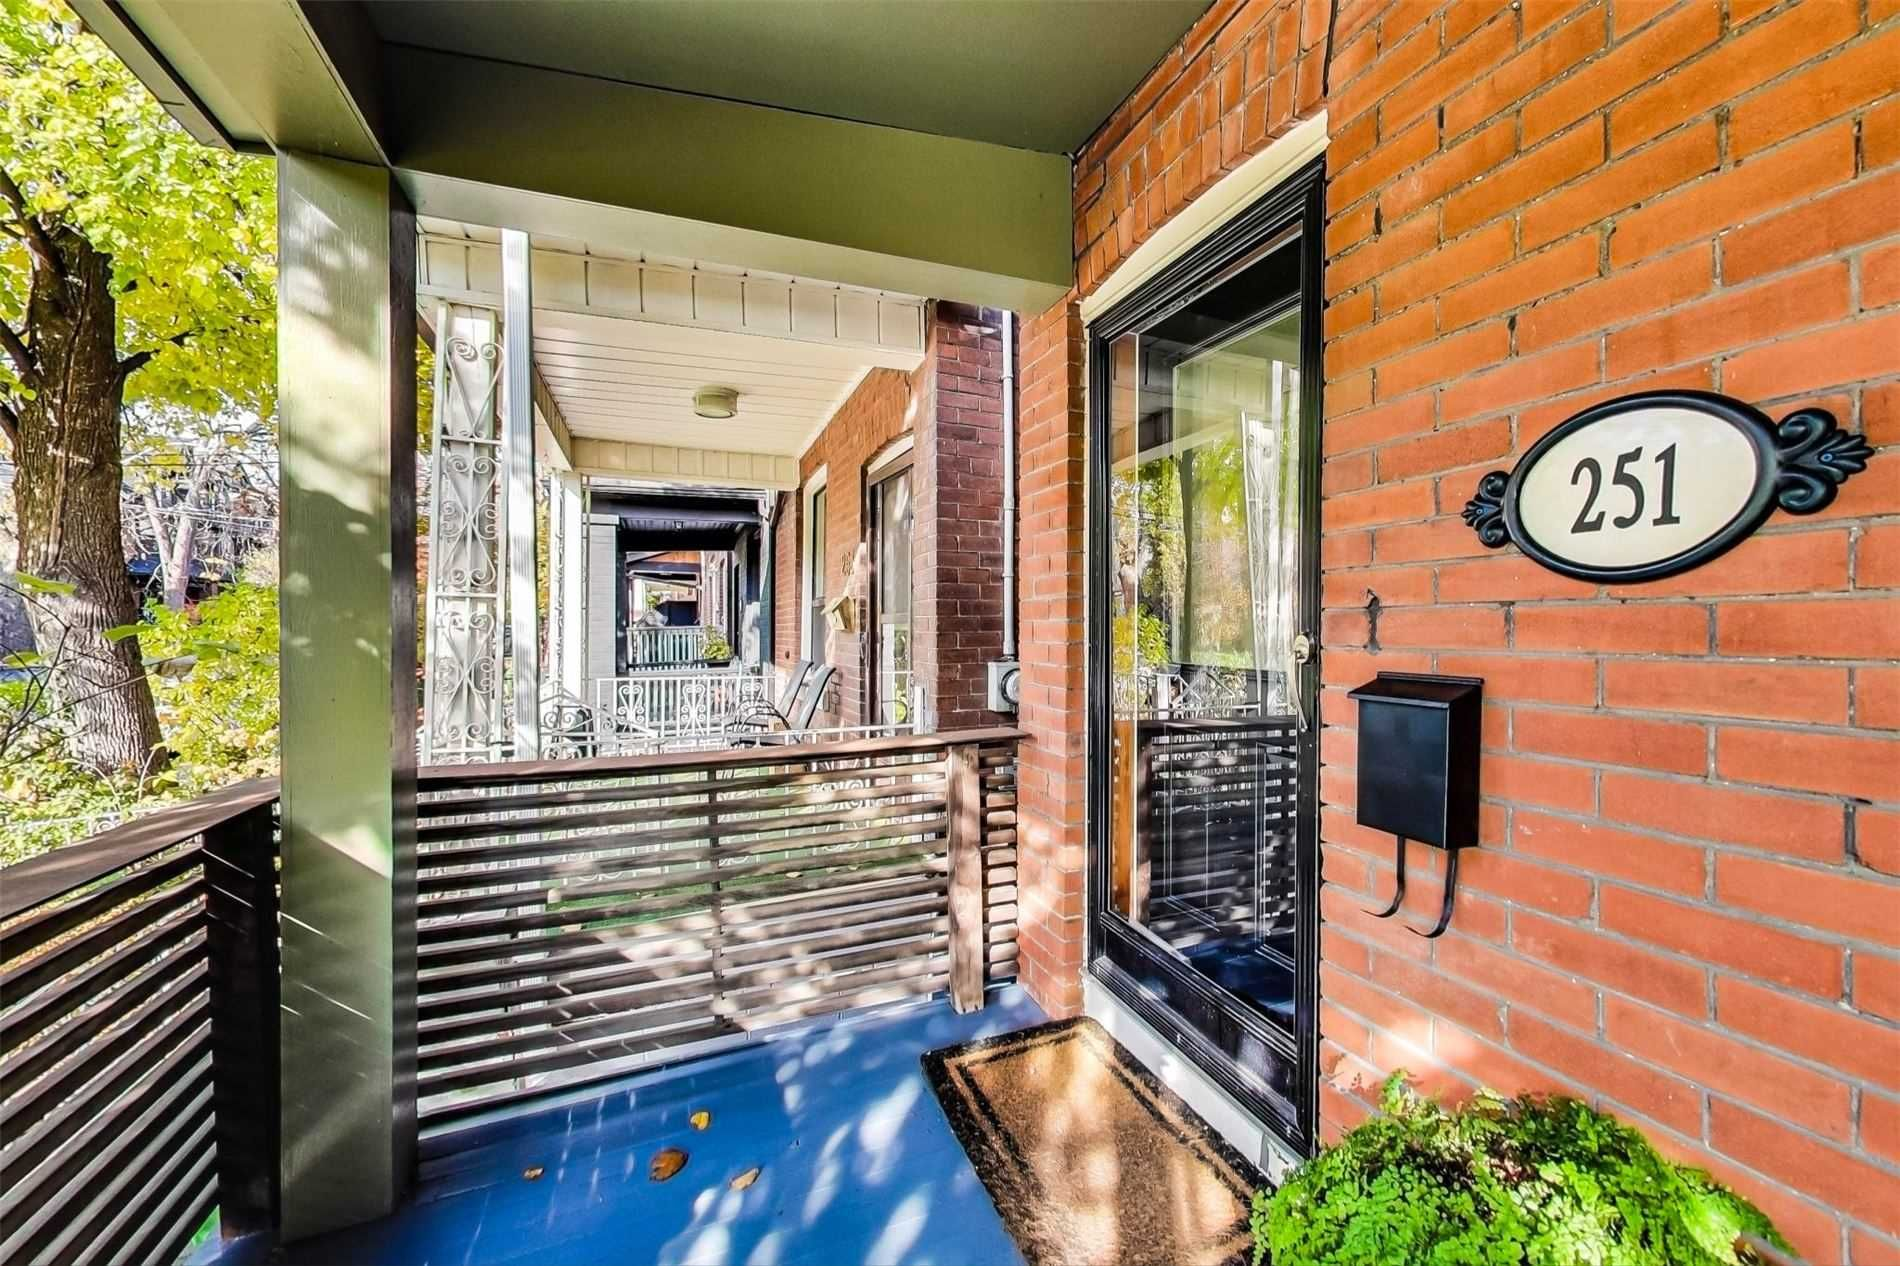 Main Photo: 251 Crawford Street in Toronto: Trinity-Bellwoods House (2 1/2 Storey) for sale (Toronto C01)  : MLS®# C4985233